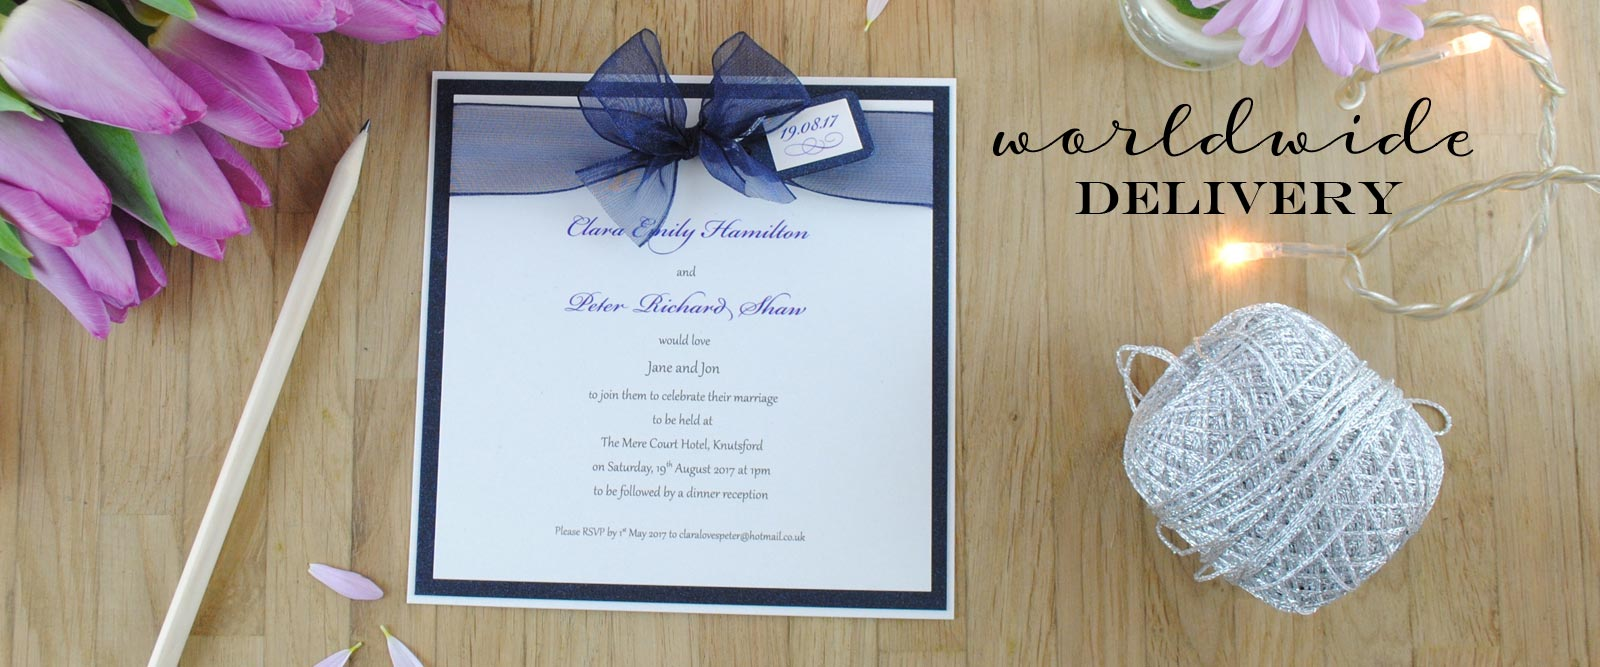 luxury handmade wedding invitations & wedding stationery uk Handcrafted Wedding Stationery Uk Handcrafted Wedding Stationery Uk #8 handcrafted wedding stationery uk